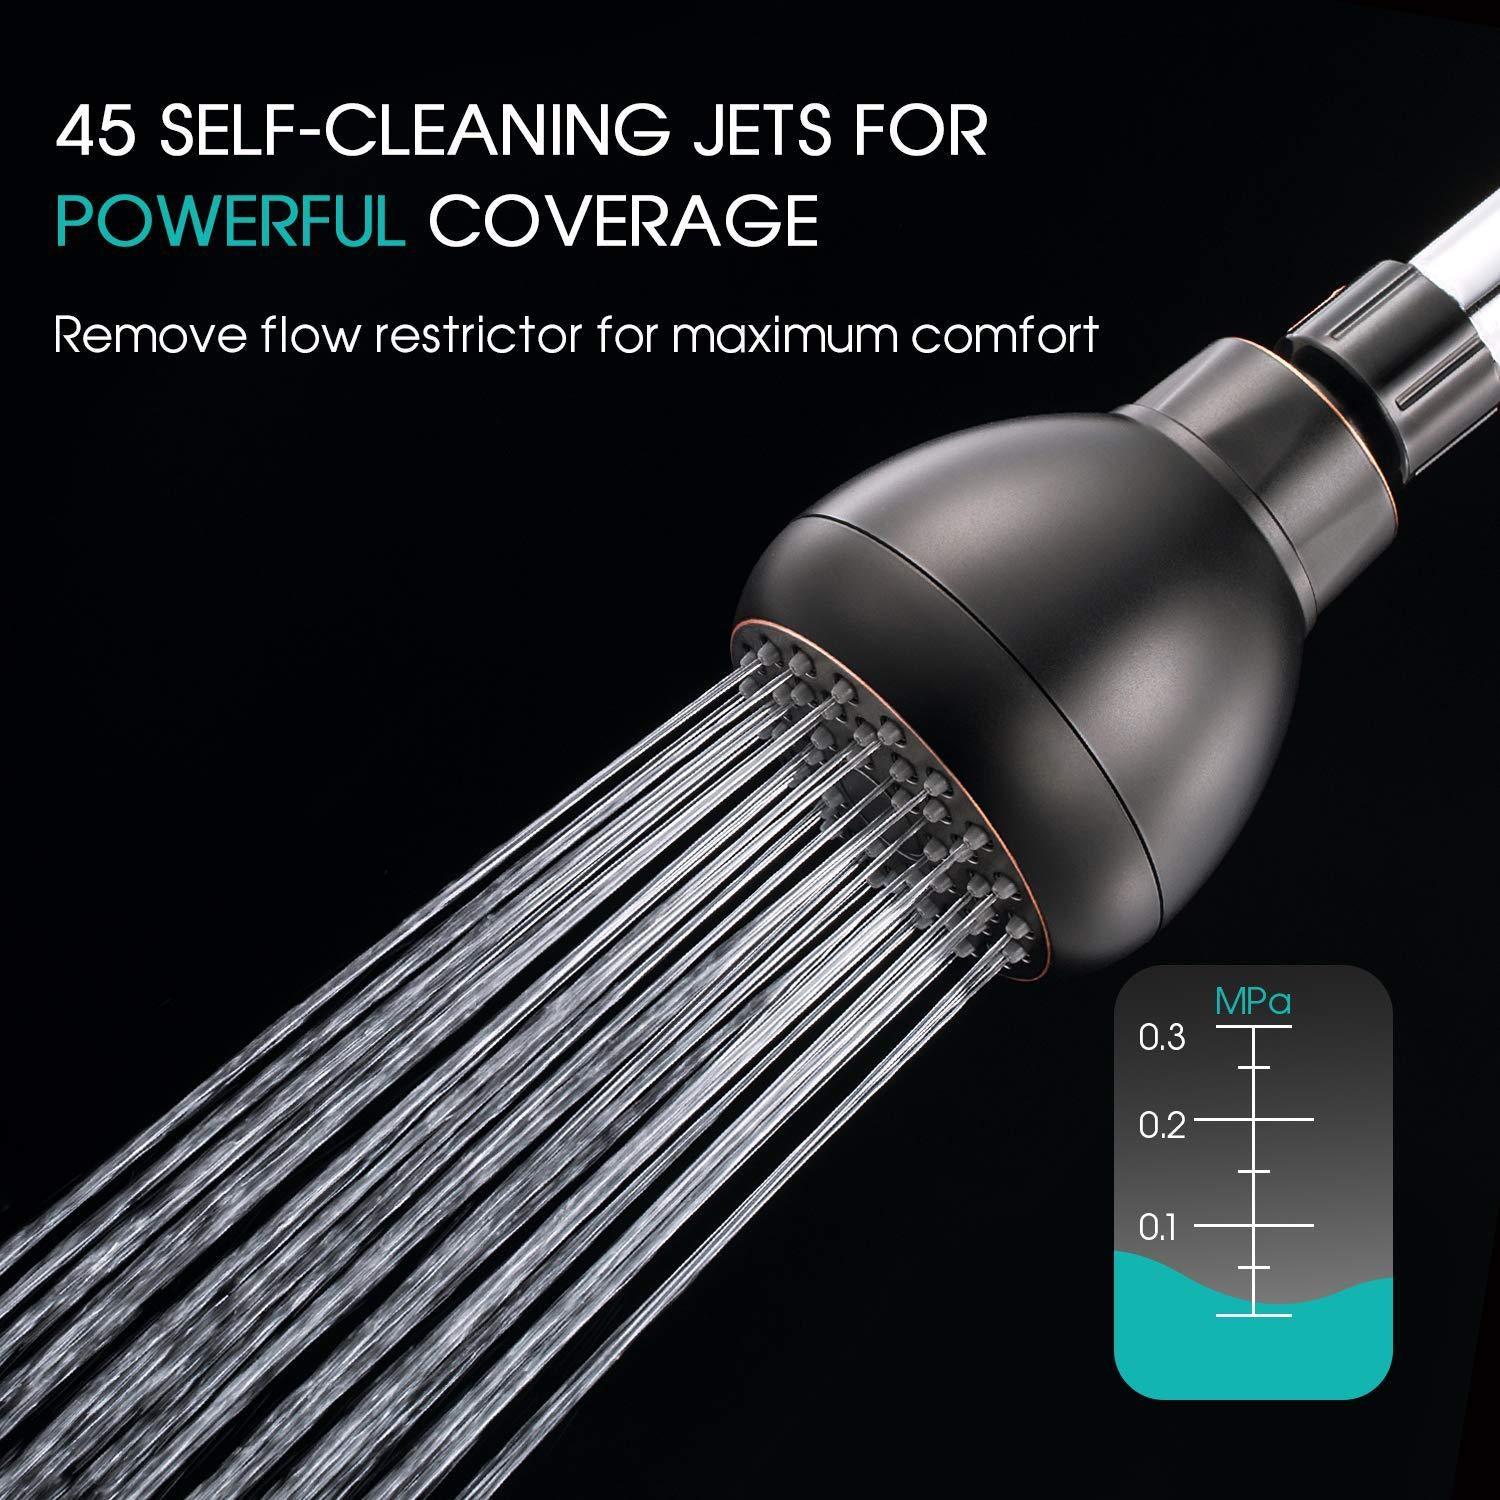 High Pressure Shower Head - 3 inch Anti-Clog Anti-Leak Fixed Chrome Showerhead - Adjustable Metal Swivel Ball Joint with Filter - Ultimate Shower Experience Even at Low Water Flow & Pressure